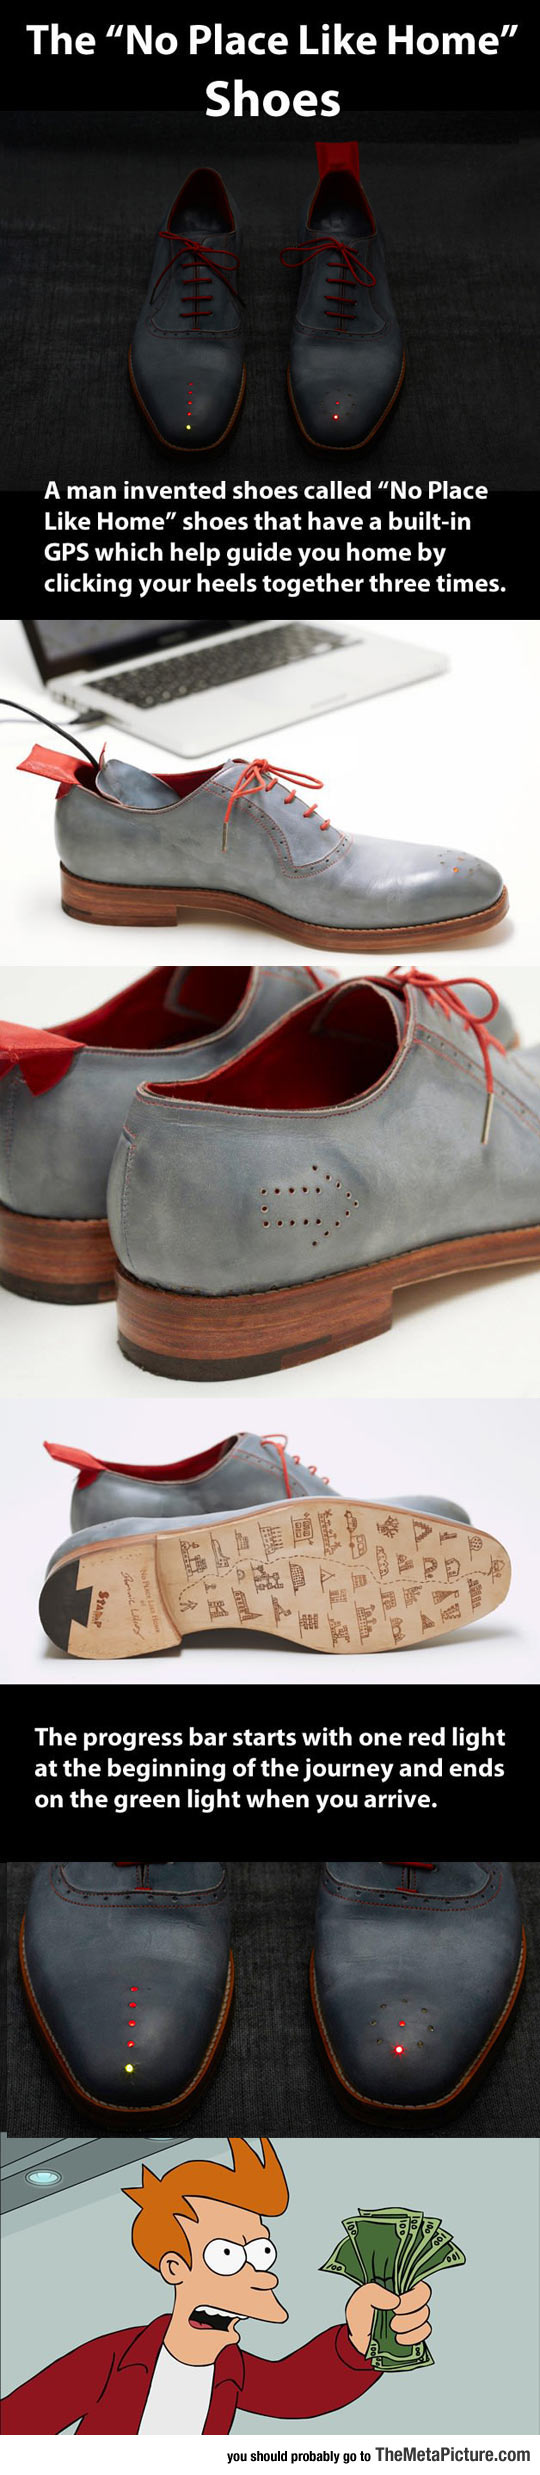 Clever Shoes